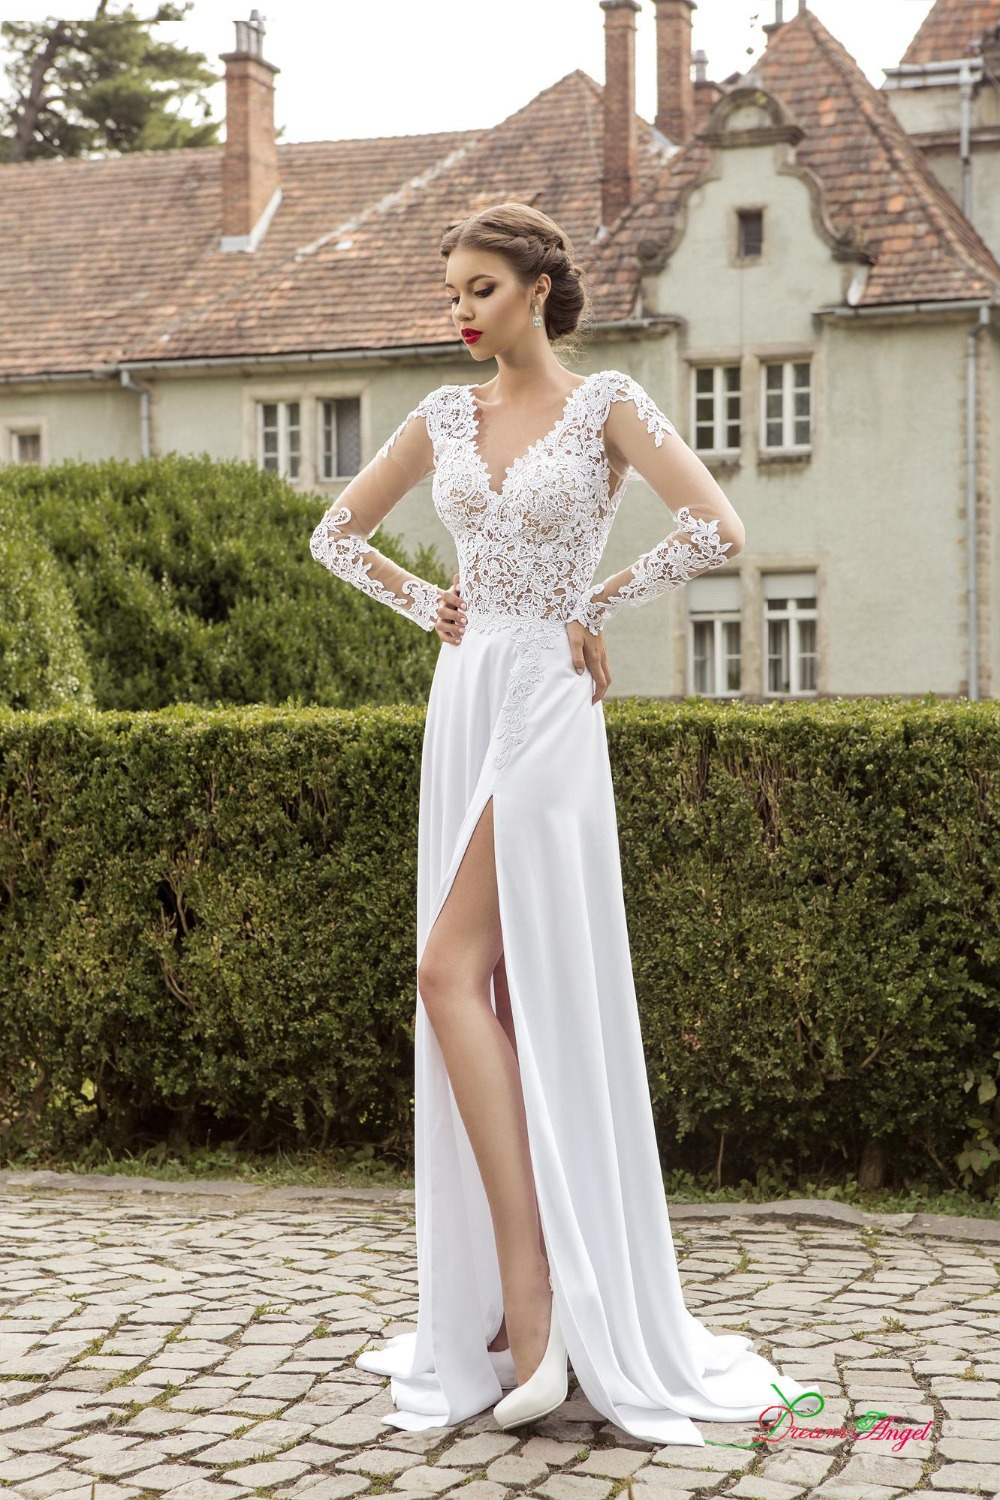 backless wedding dresses backless wedding dresses backless slip wedding dress